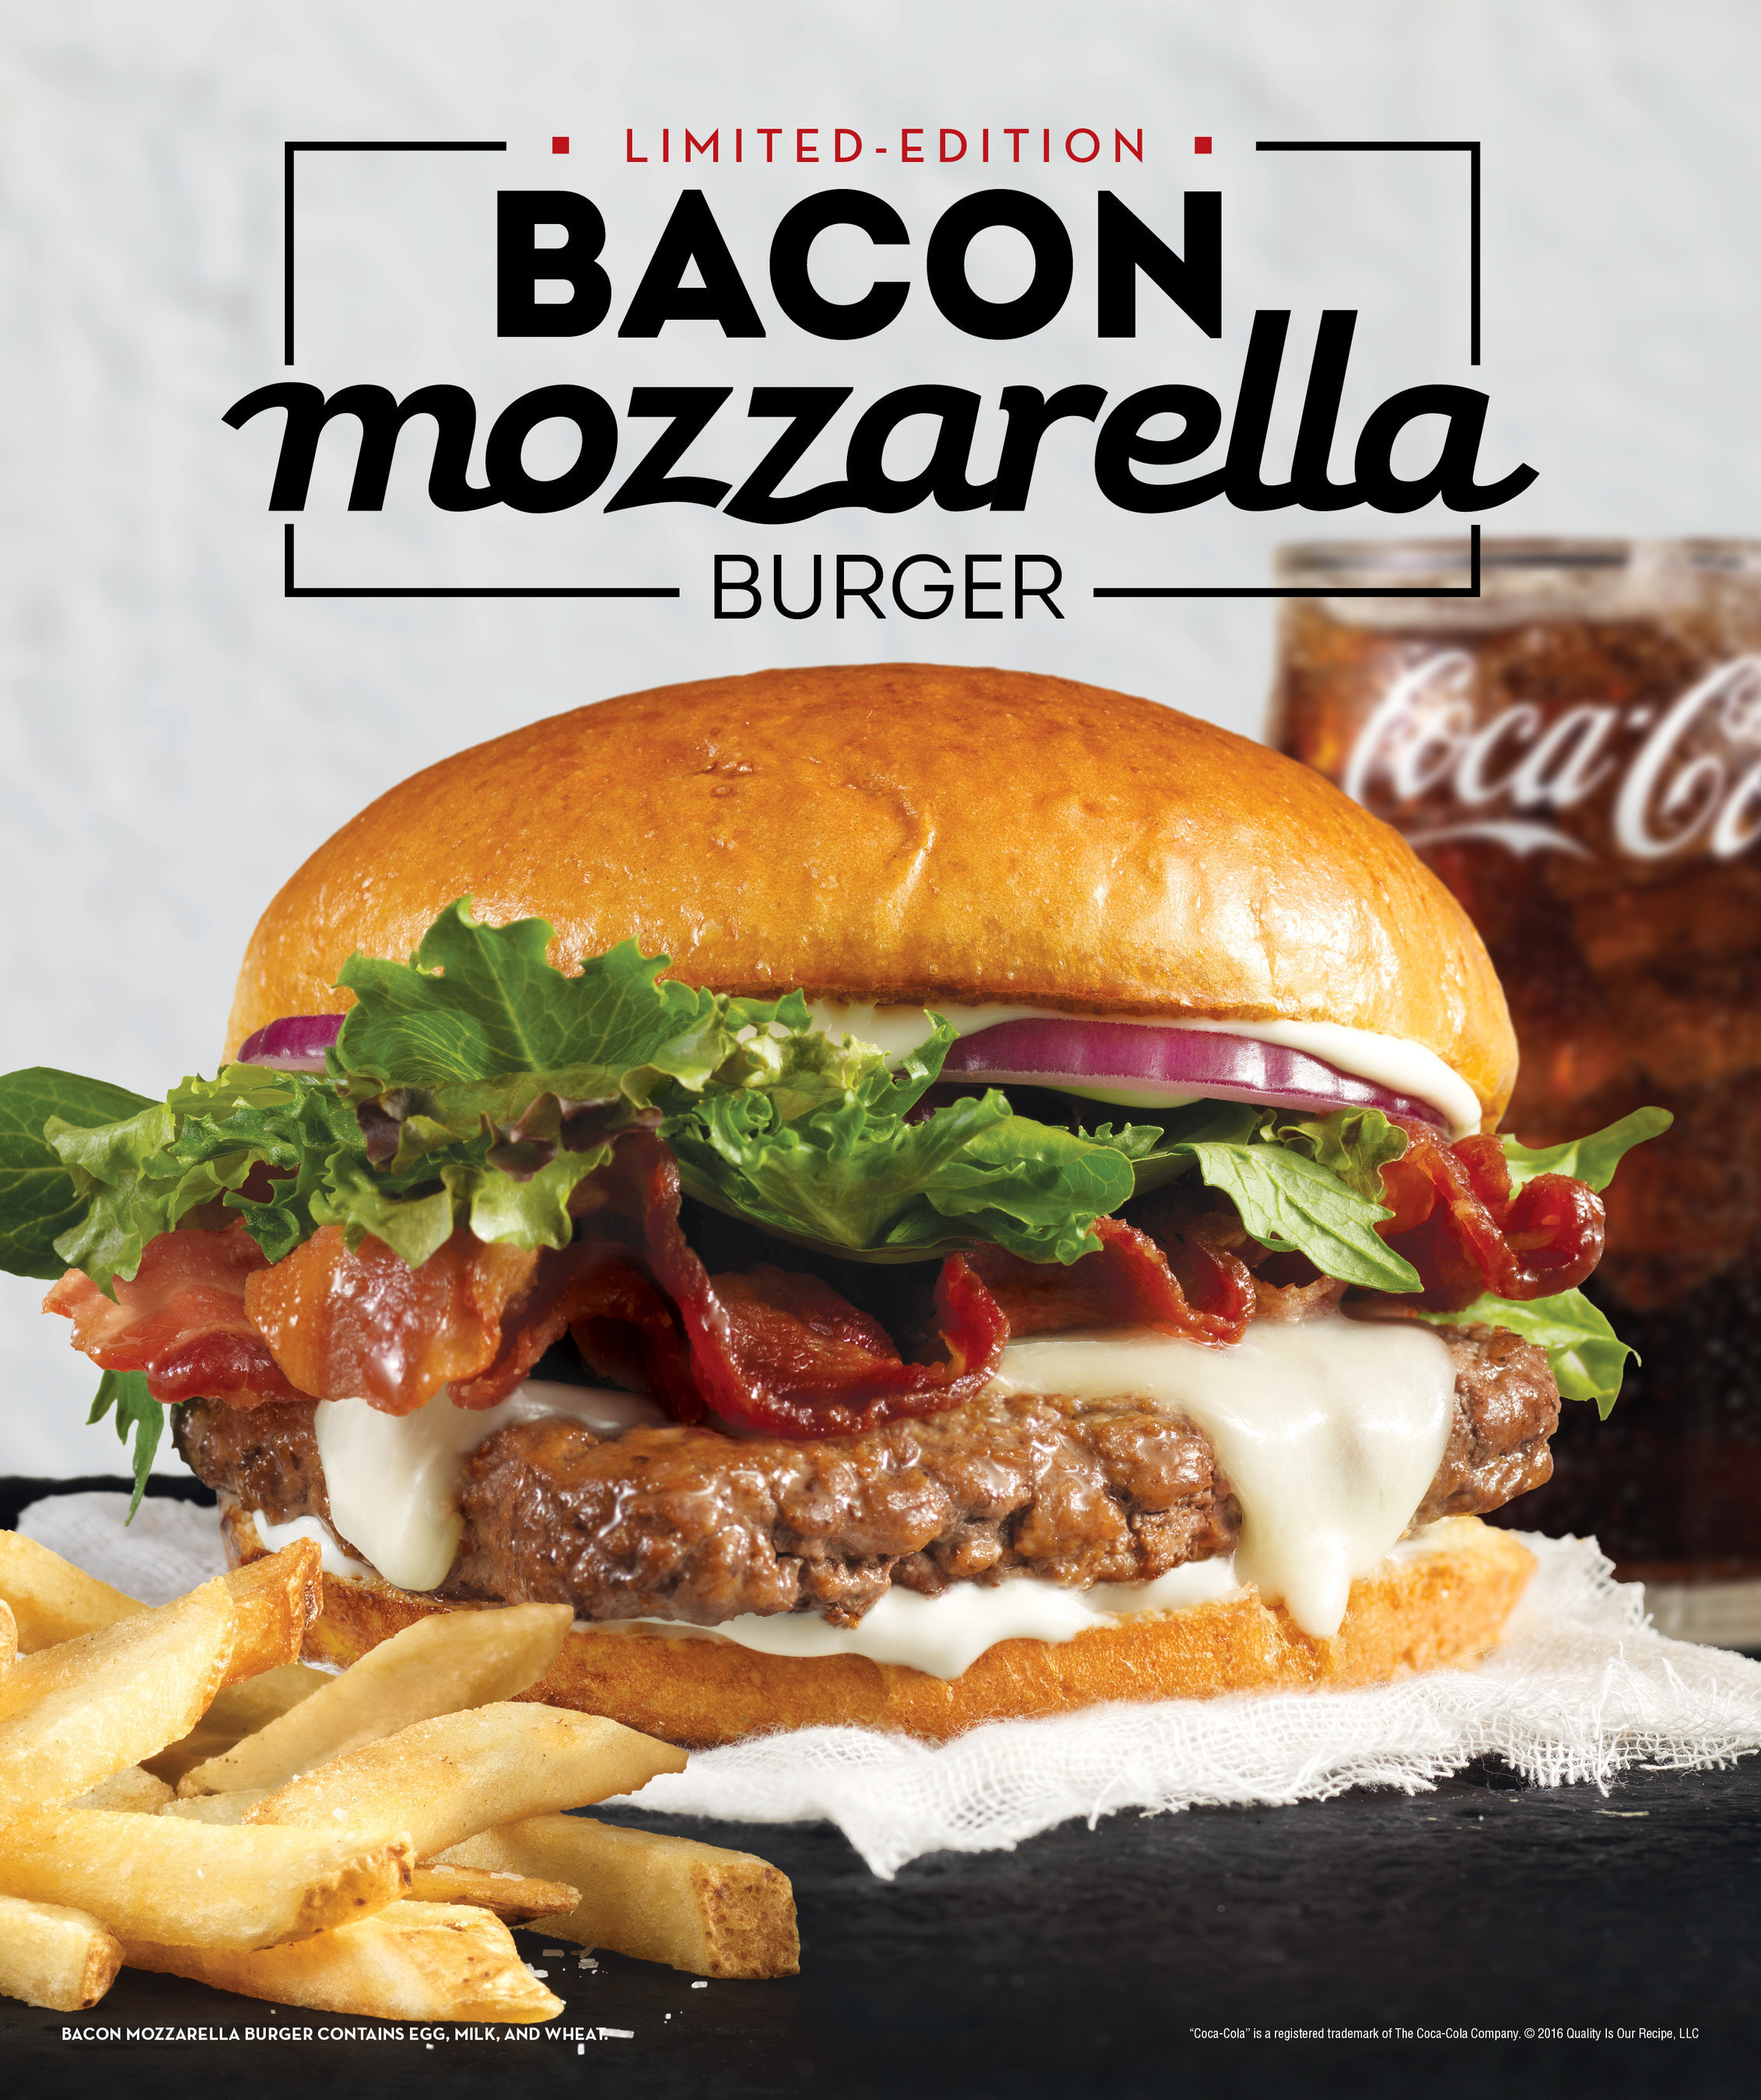 Wendy S Releases Its Next Hit Single The Bacon Mozzarella Burger